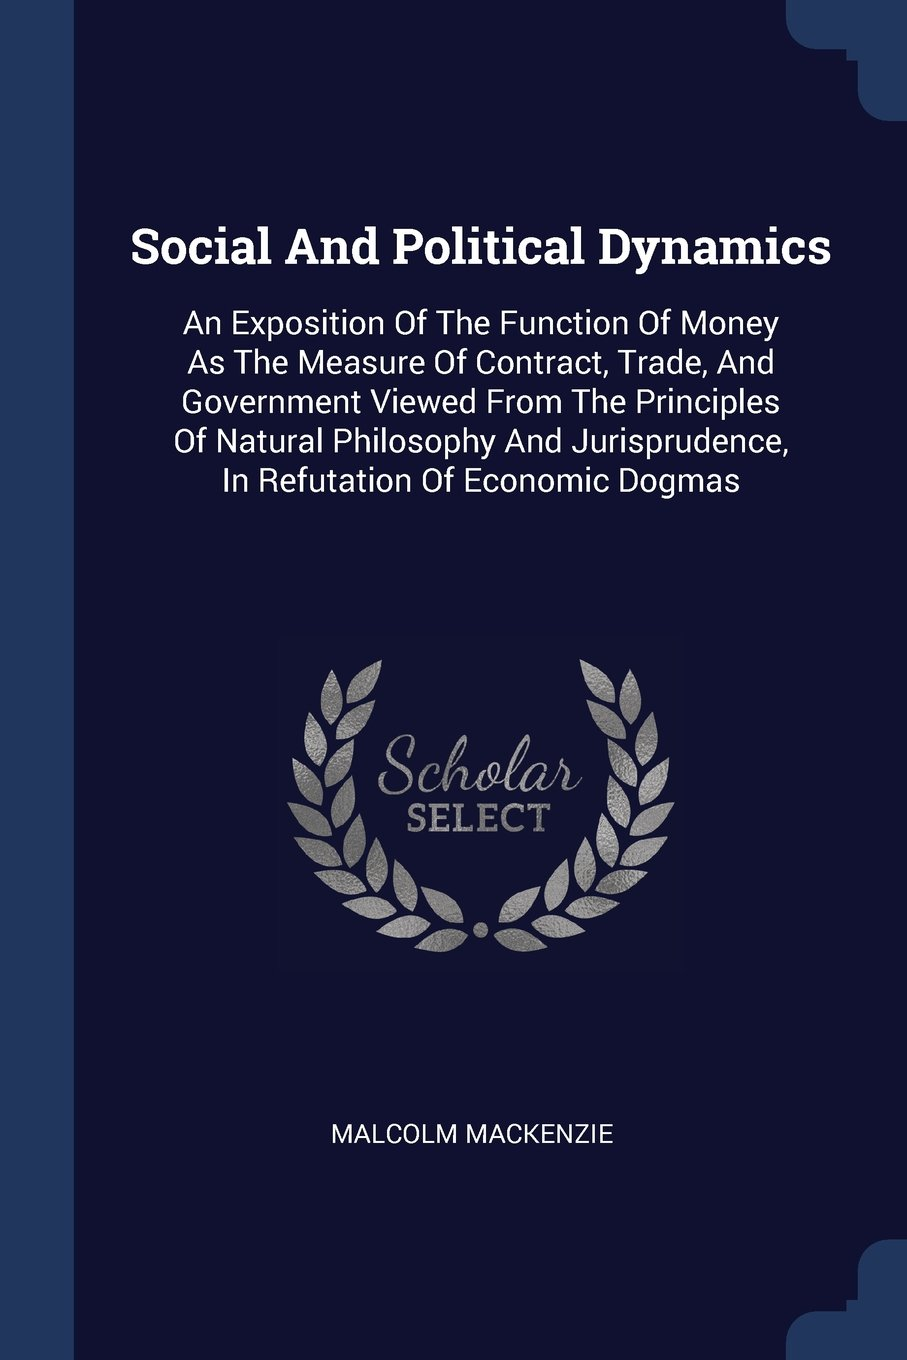 Read Online Social And Political Dynamics: An Exposition Of The Function Of Money As The Measure Of Contract, Trade, And Government Viewed From The Principles Of ... In Refutation Of Economic Dogmas pdf epub